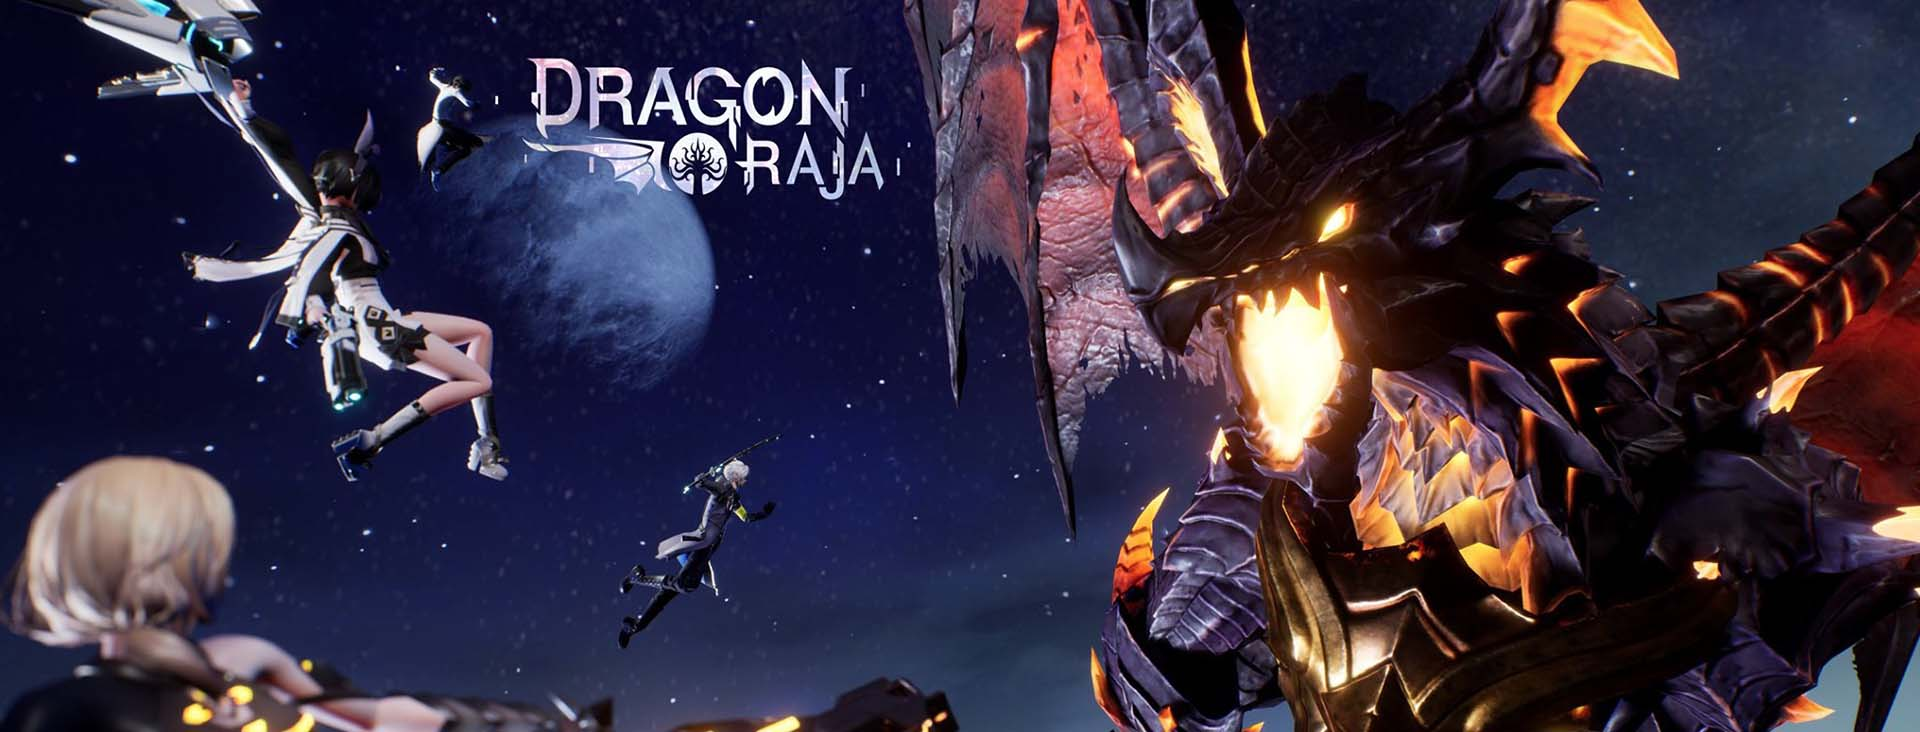 Dragon Raja on pc